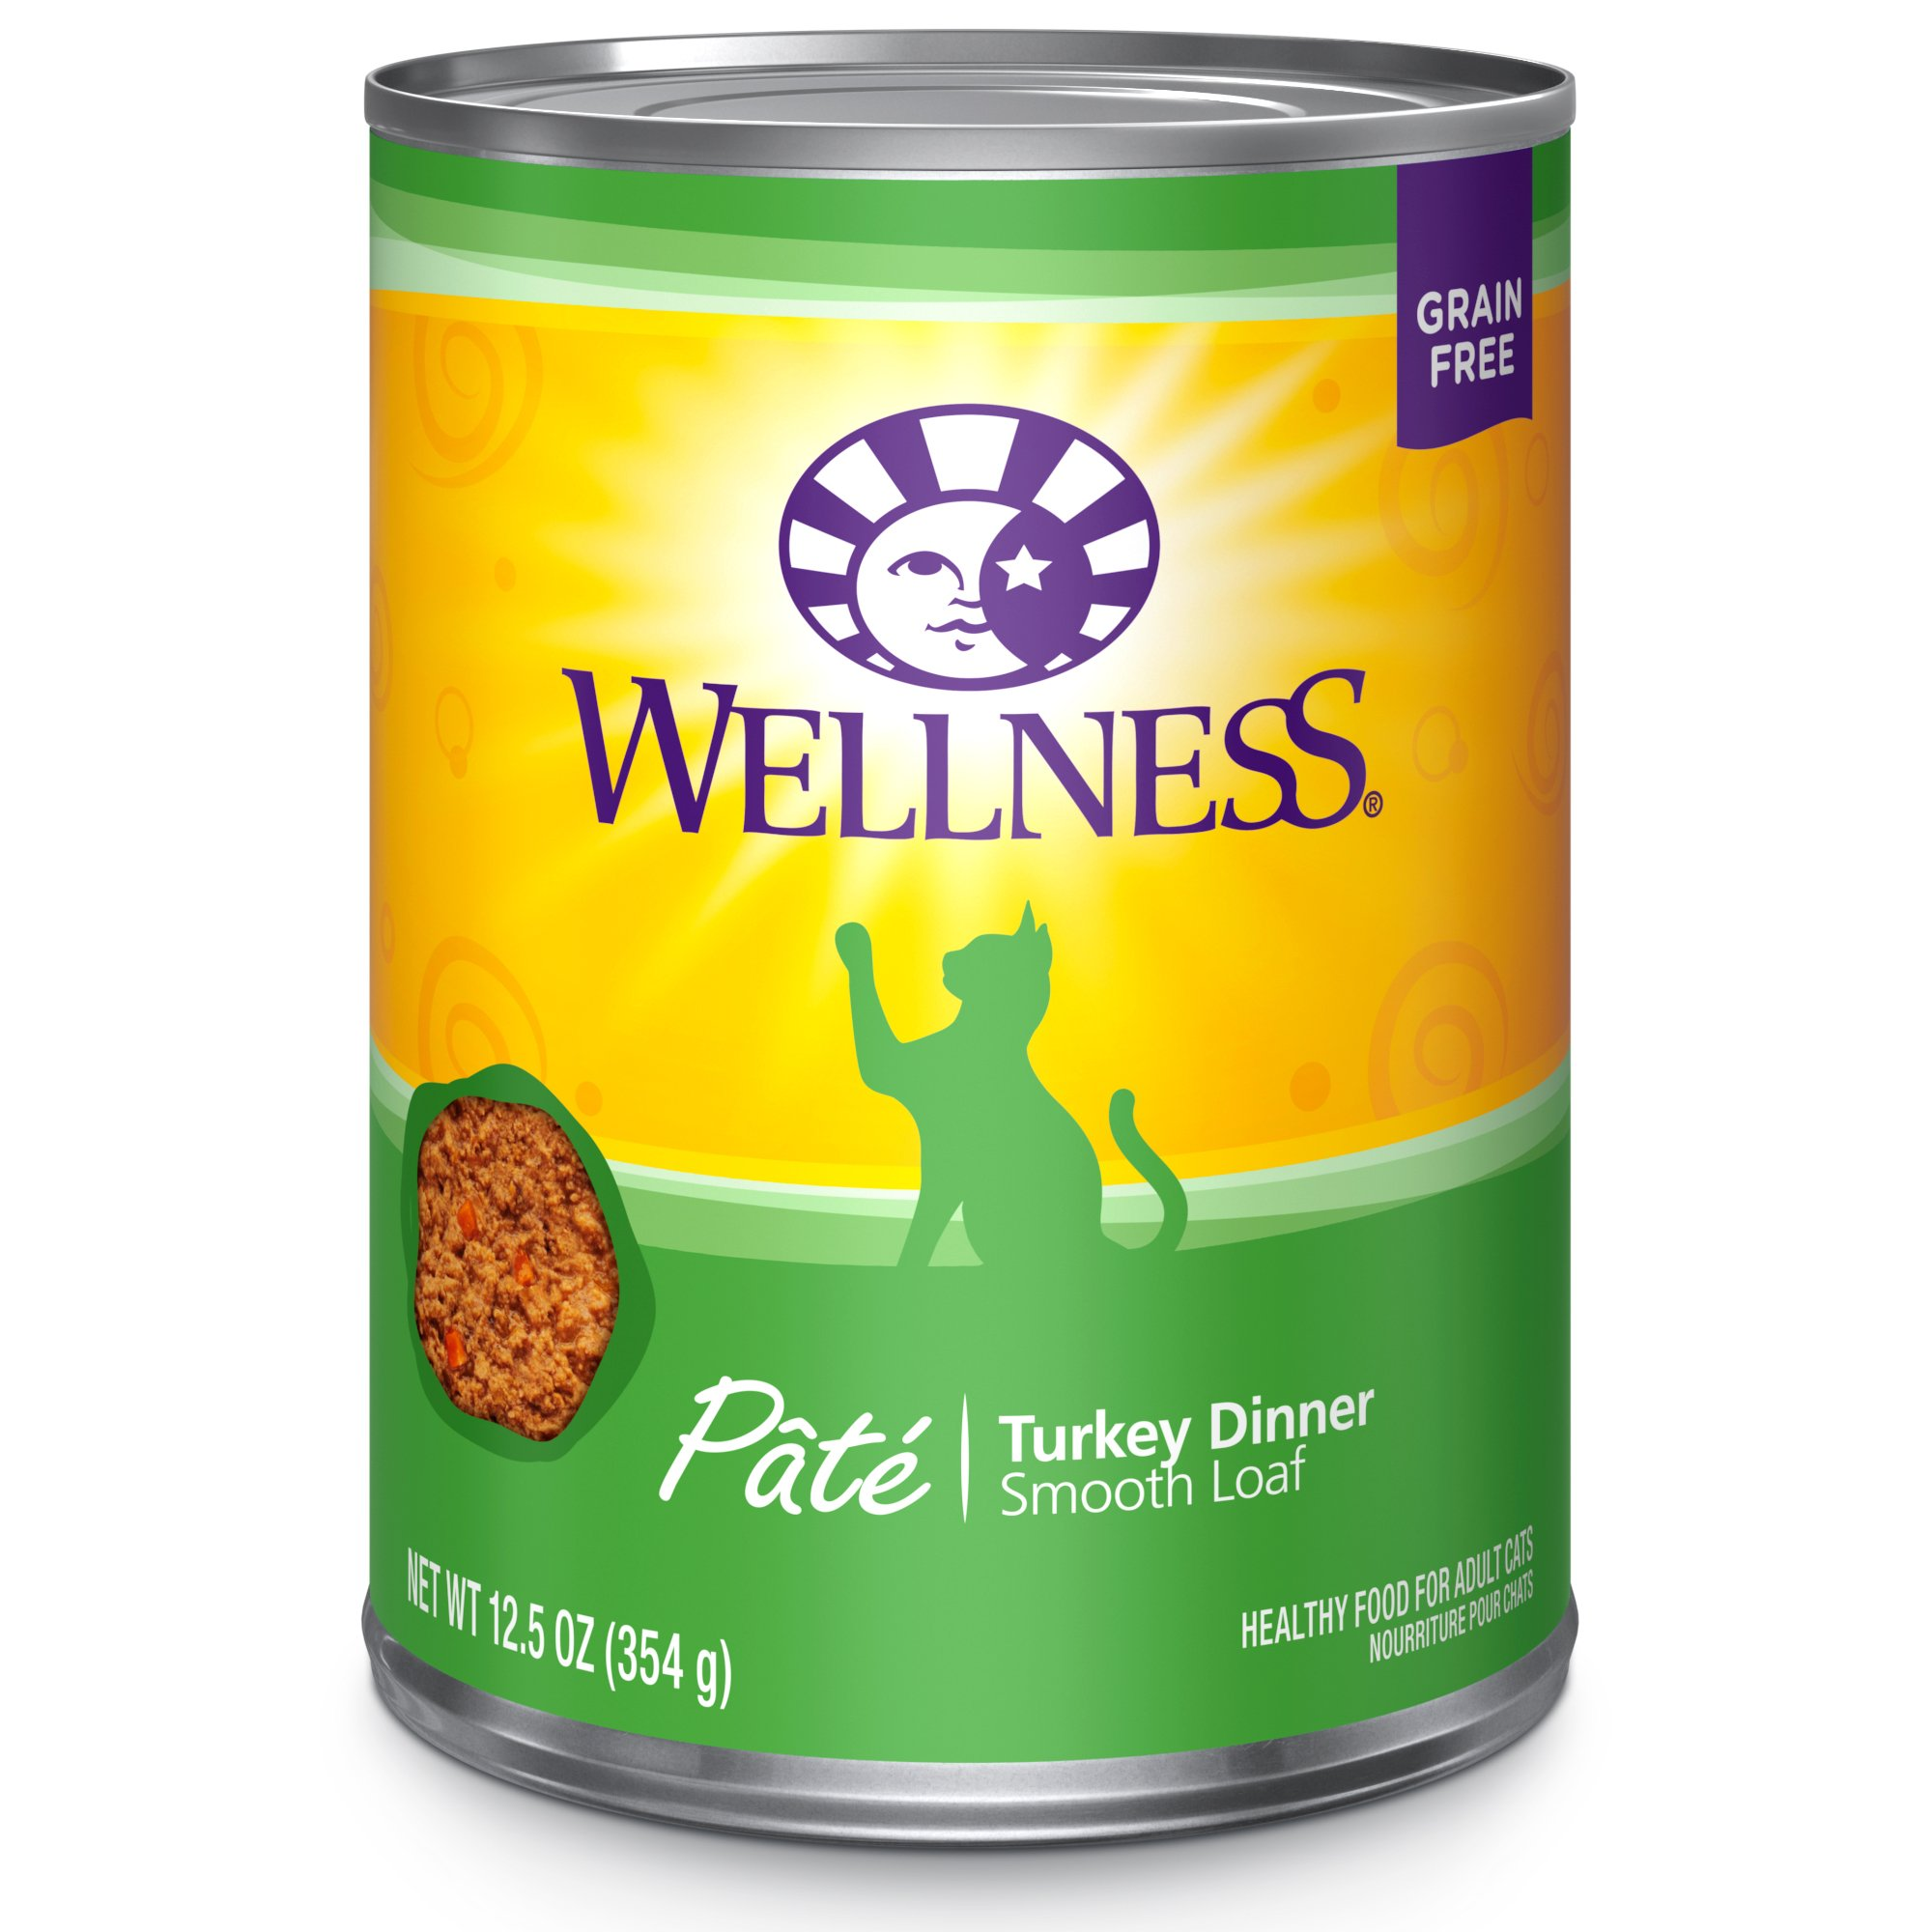 Wellness Natural Grain-Free Wet Canned Cat Food, Turkey Pate, 12.5-Ounce Can (Pack Of 12) by Wellness Natural Pet Food